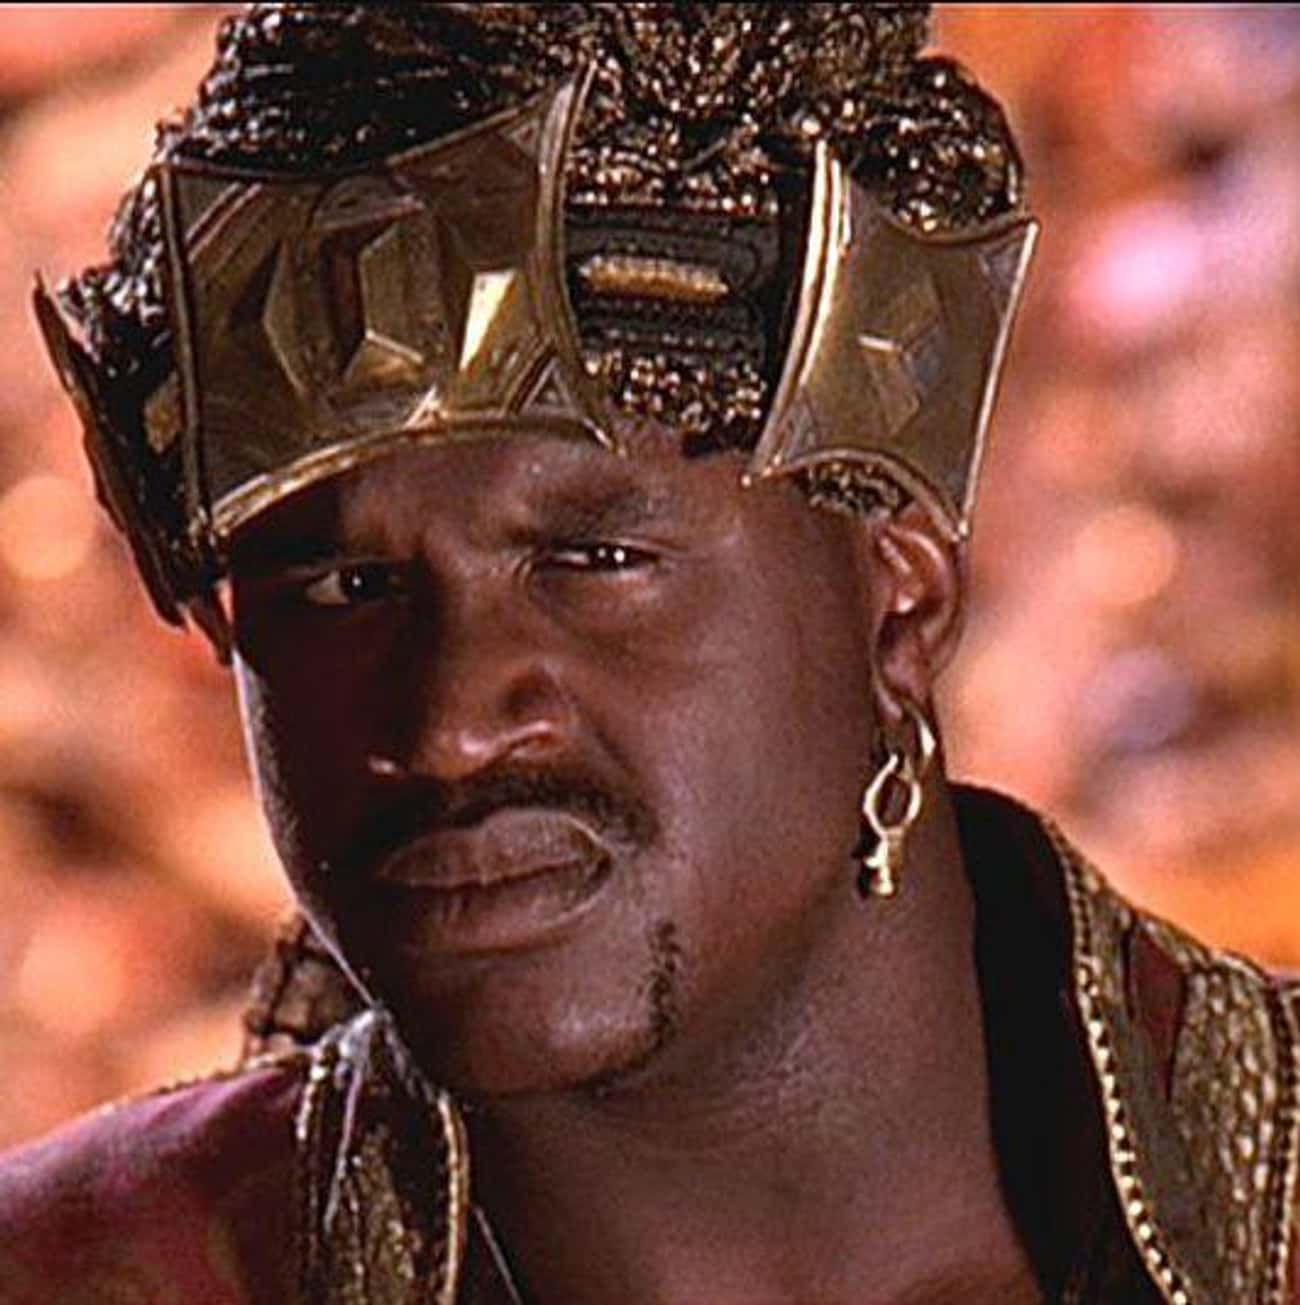 Kazaam is listed (or ranked) 2 on the list Classic '90s Kids Movies You Forgot Are Actually Super Messed Up